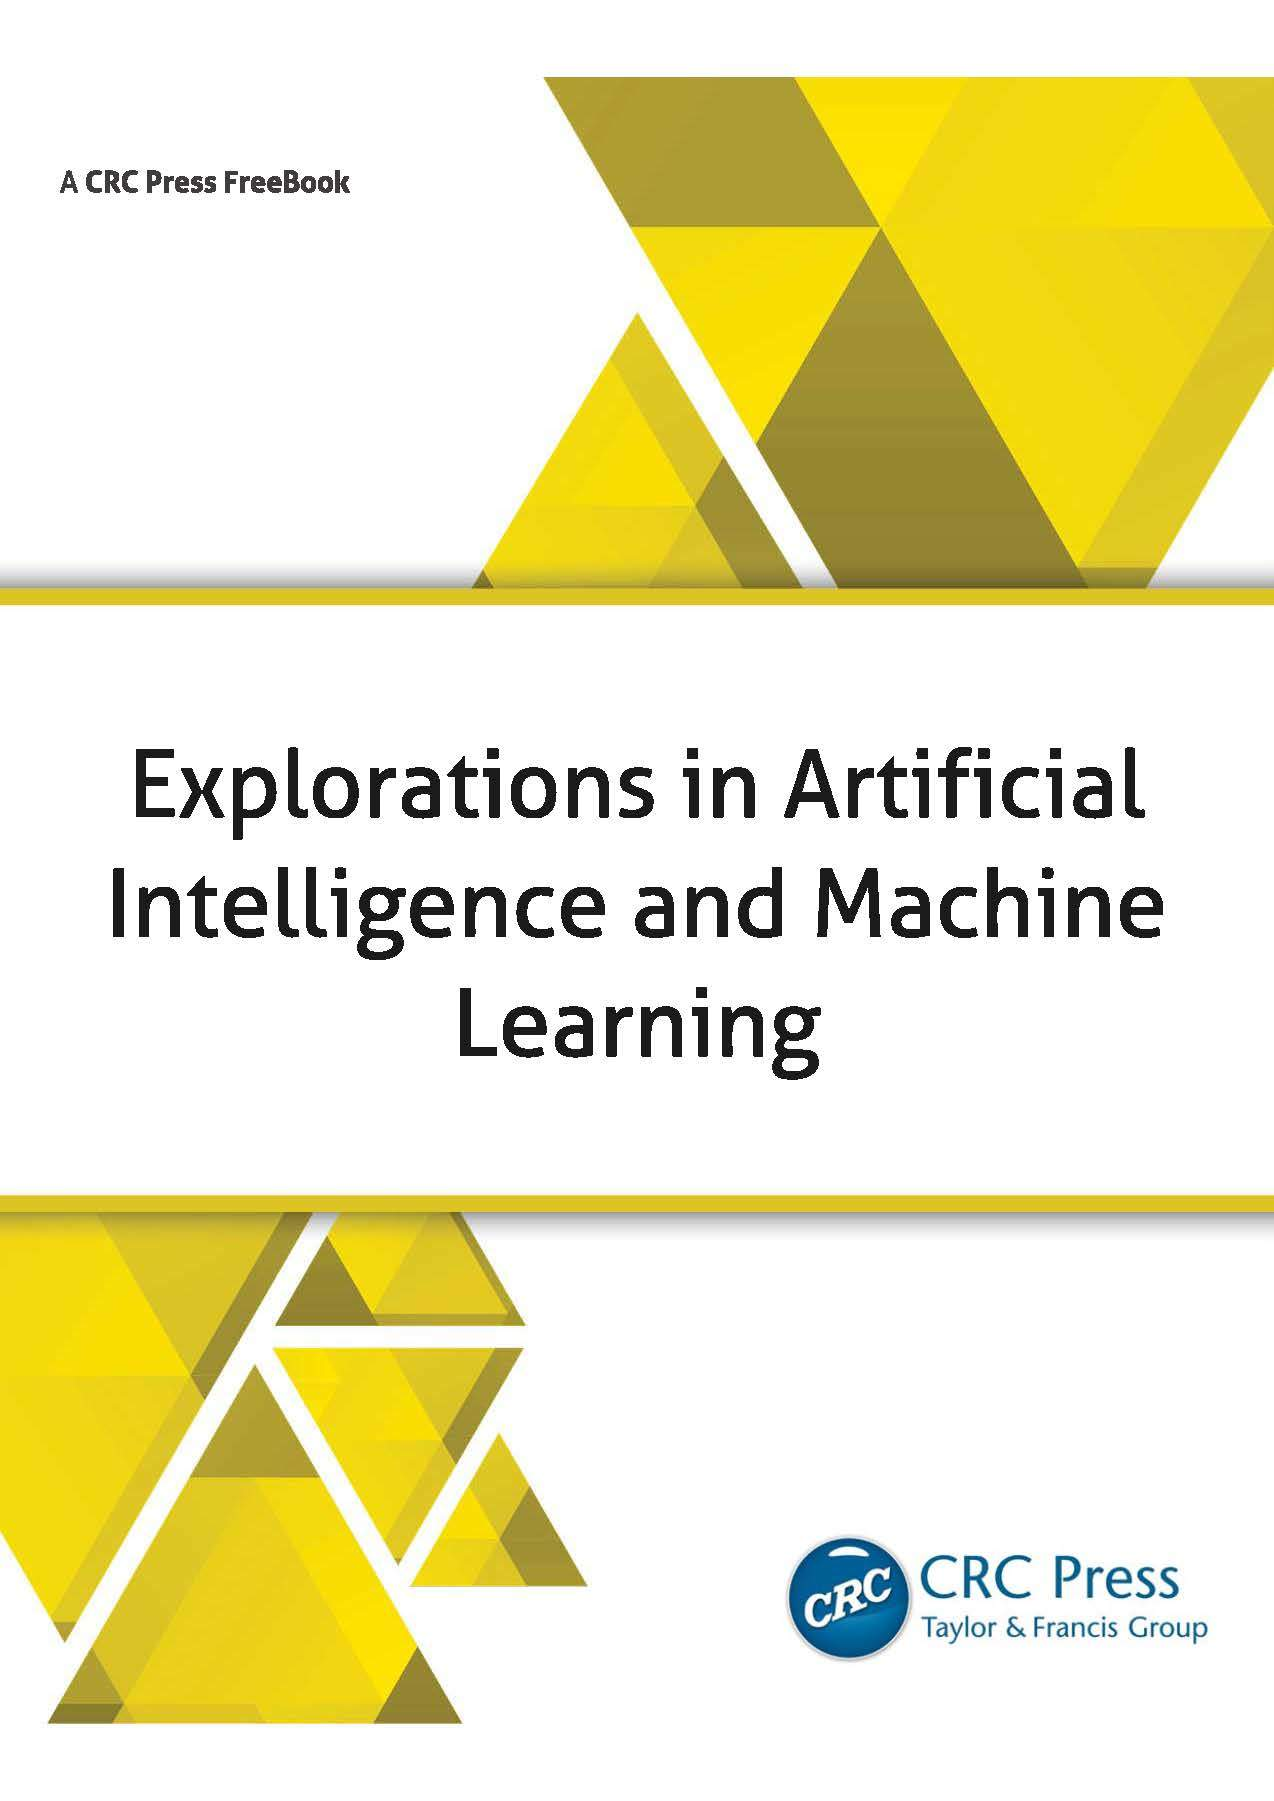 Explorations in Artificial Intelligence and Machine Learning FreeBook